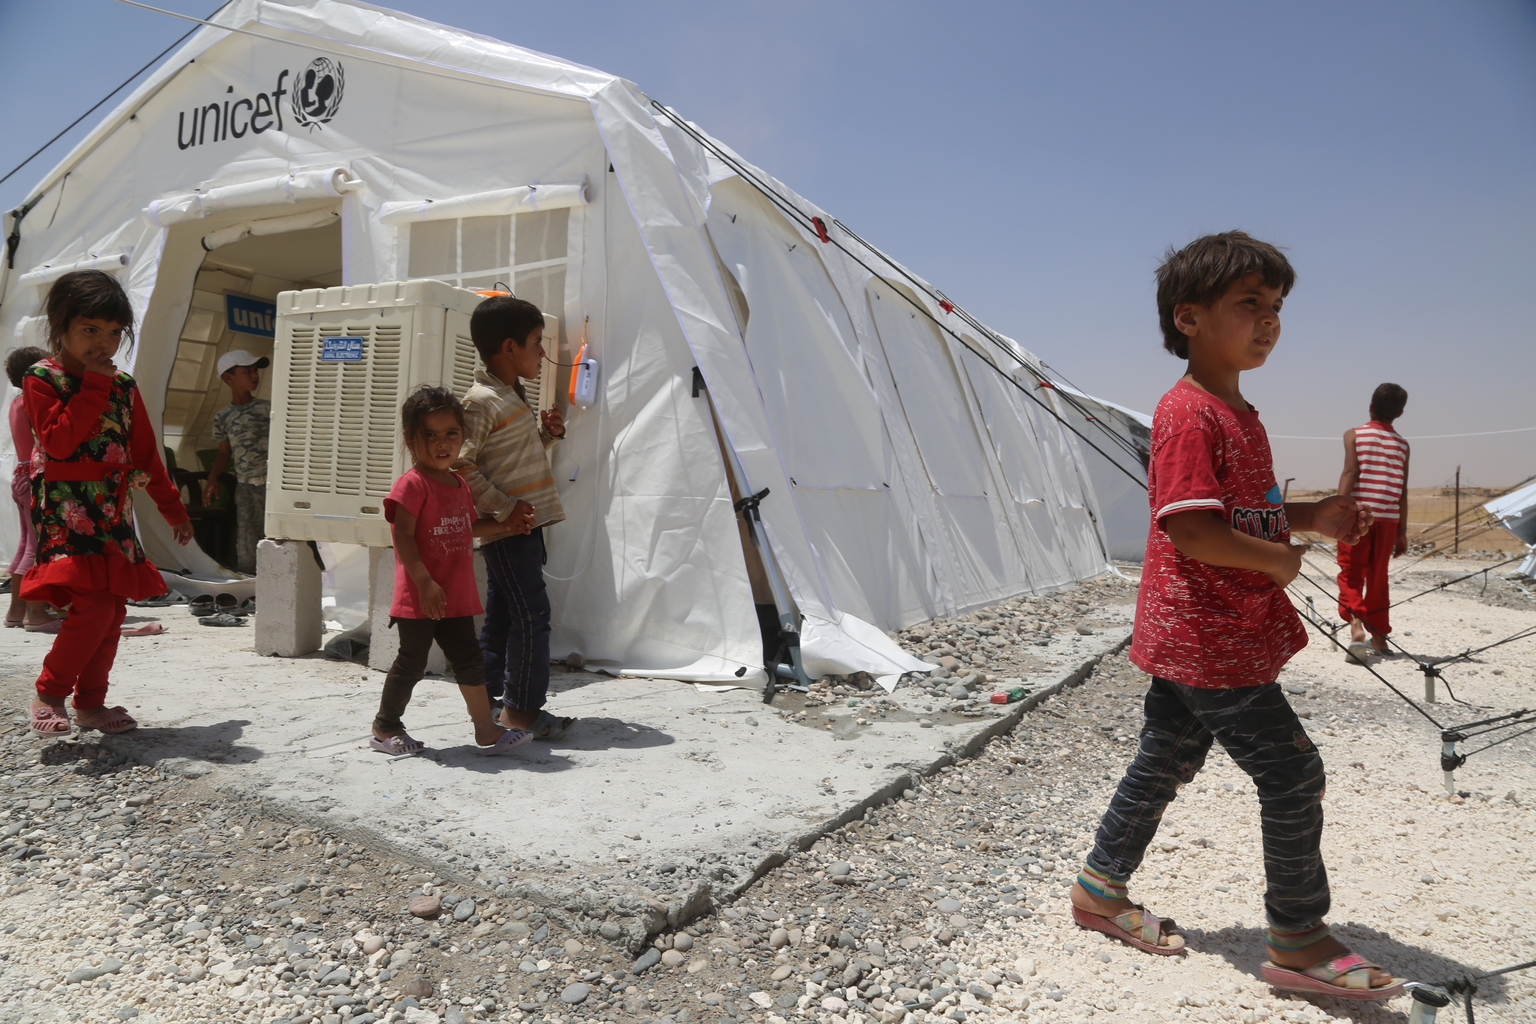 On 4 July 2017 in Ain Issa camp in the Syrian Arab Republic, displaced children from Raqqa leave a UNICEF child-friendly space which offers and a wide range of recreational activities. More than 6,600 people live in harsh desert conditions, as violence continues in the area. Since November 2016, unrelenting violence in the north eastern governorate of Raqqa has displaced over 200,000 people, almost half of whom are children. Intensified attacks have destroyed infrastructure and shattered civilian lives. Families are seeking safety in temporary shelters, with little access to basic services. In Ain Issa camp, UNICEF has set up six child-friendly spaces for learning and playing and is providing psychological support to more than 400 children to help them cope with the traumas they have faced and to regain a sense of structure and normality. In response to the needs of vulnerable families in the area, UNICEF is trucking in water daily to internally displaced people in camps in Raqqa and Hassakeh, including Mabrouka, Al-Hol and Ain Issa. UNICEF has installed latrines, showers and water storage tanks in the camps and is distributing family hygiene kits to protect children against waterborne diseases. Mobile health clinics have been set up to provide primary health care, including vaccinations for children and their mothers. Nutritional supplements are distributed on a regular basis.